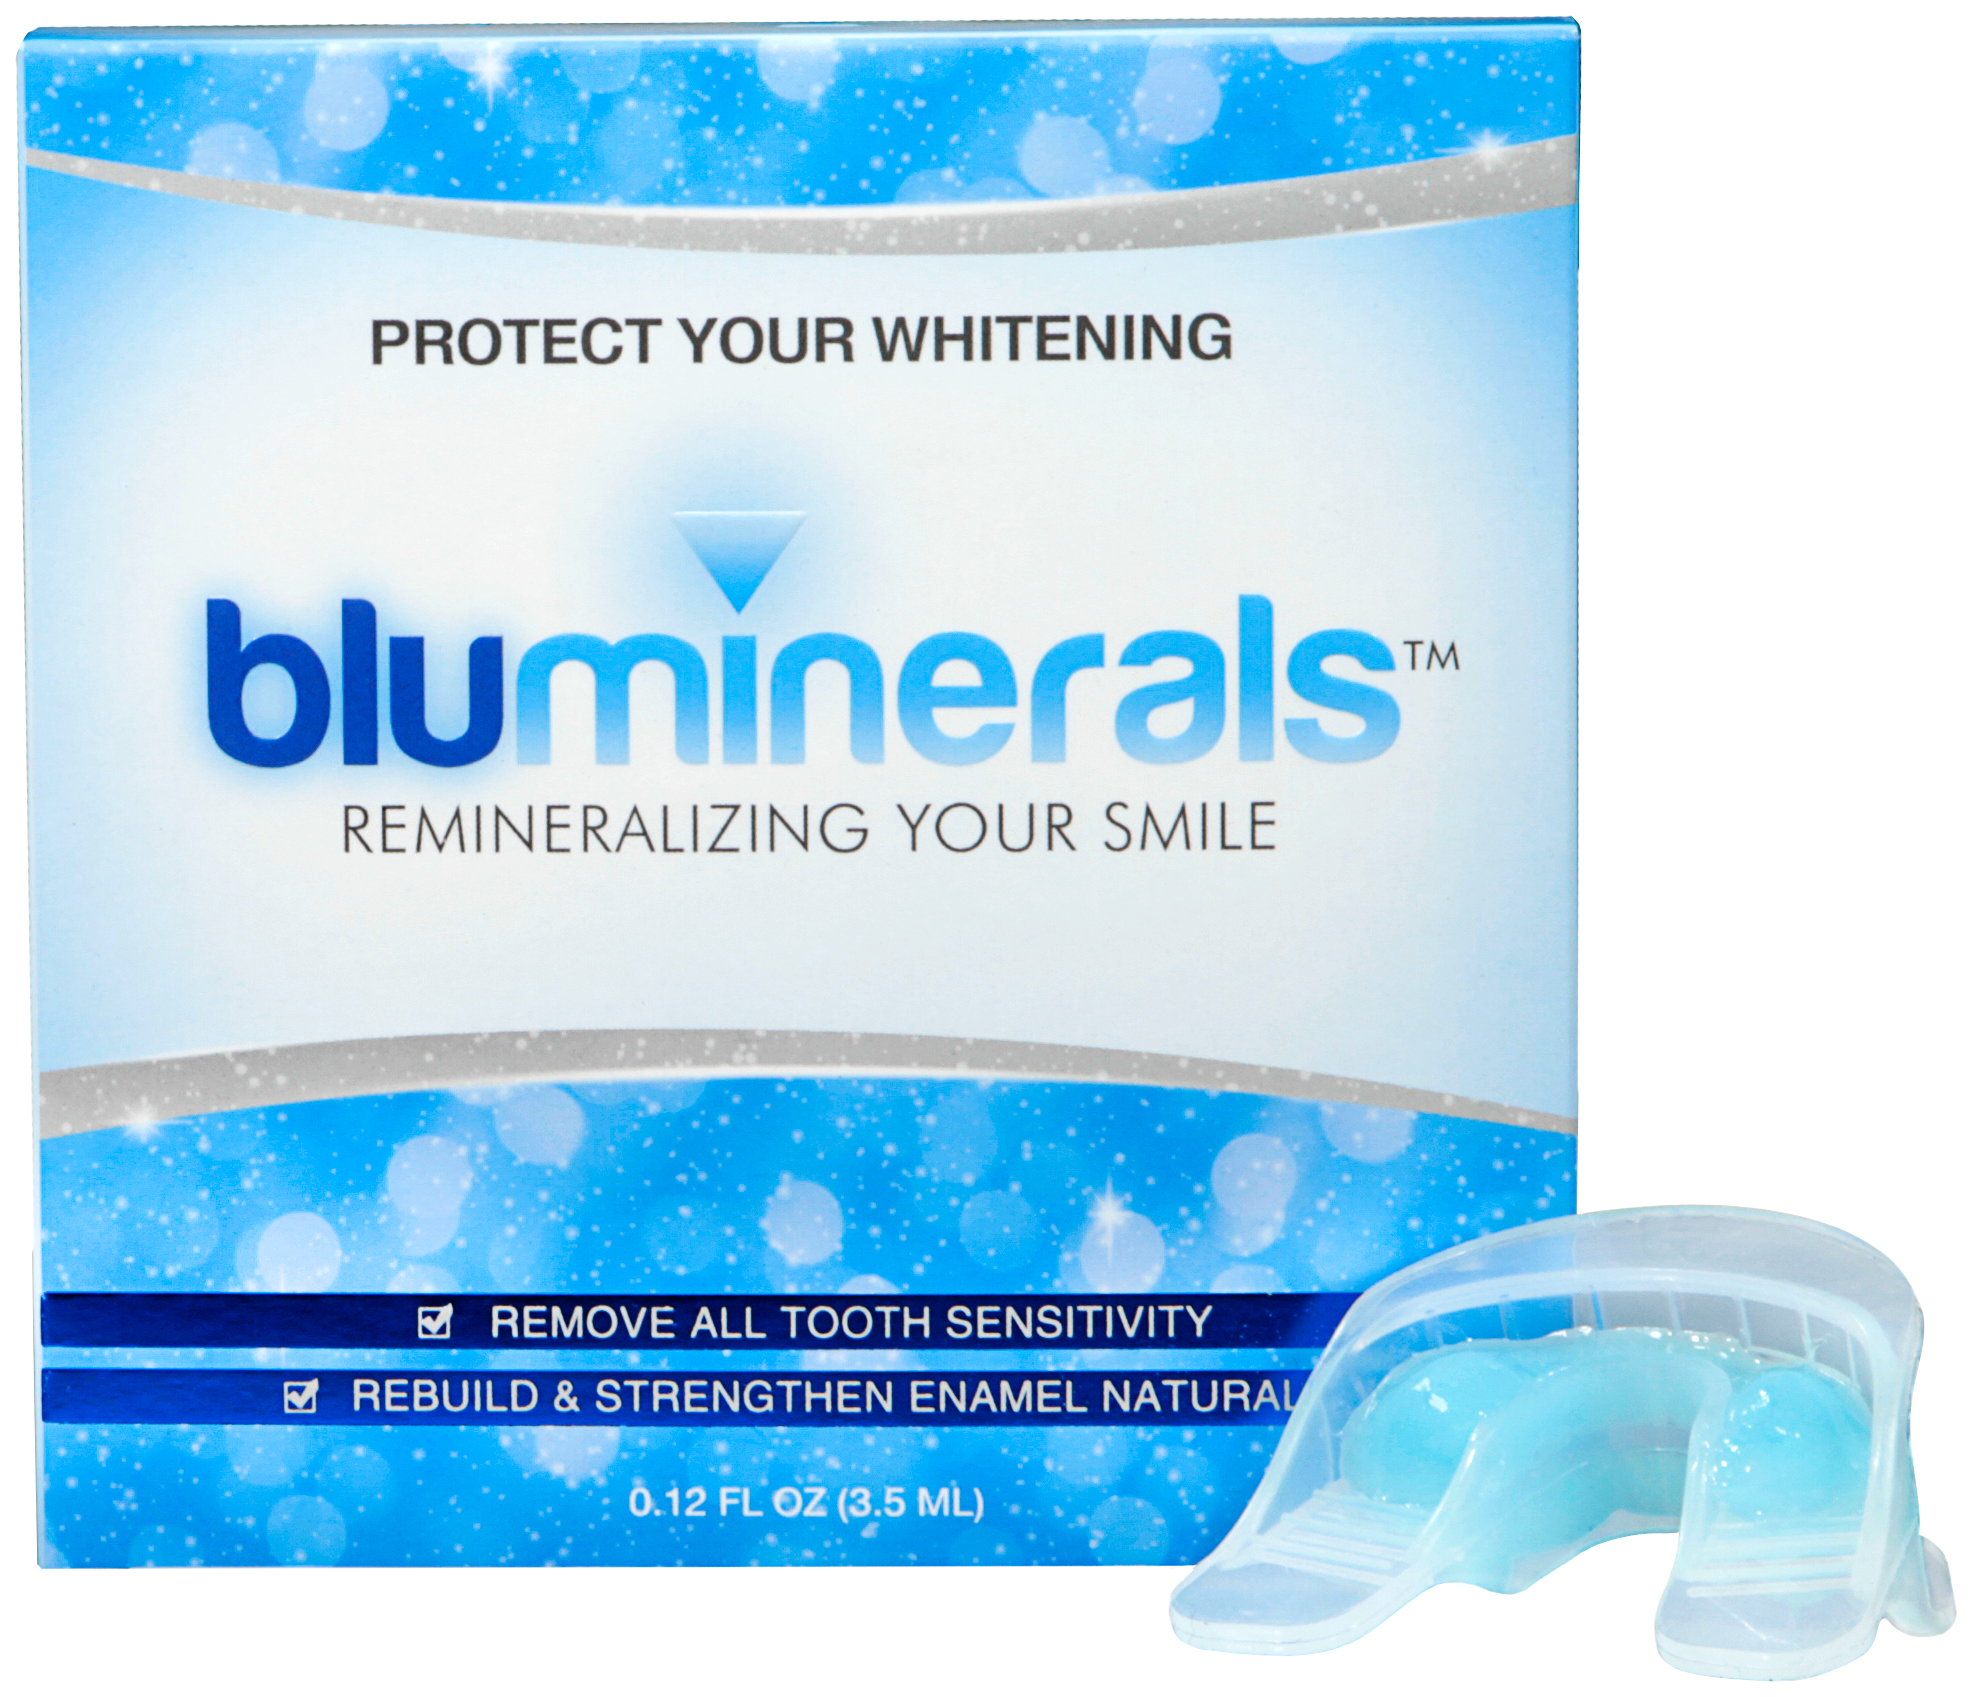 bluminerals-mouth-piece.jpg